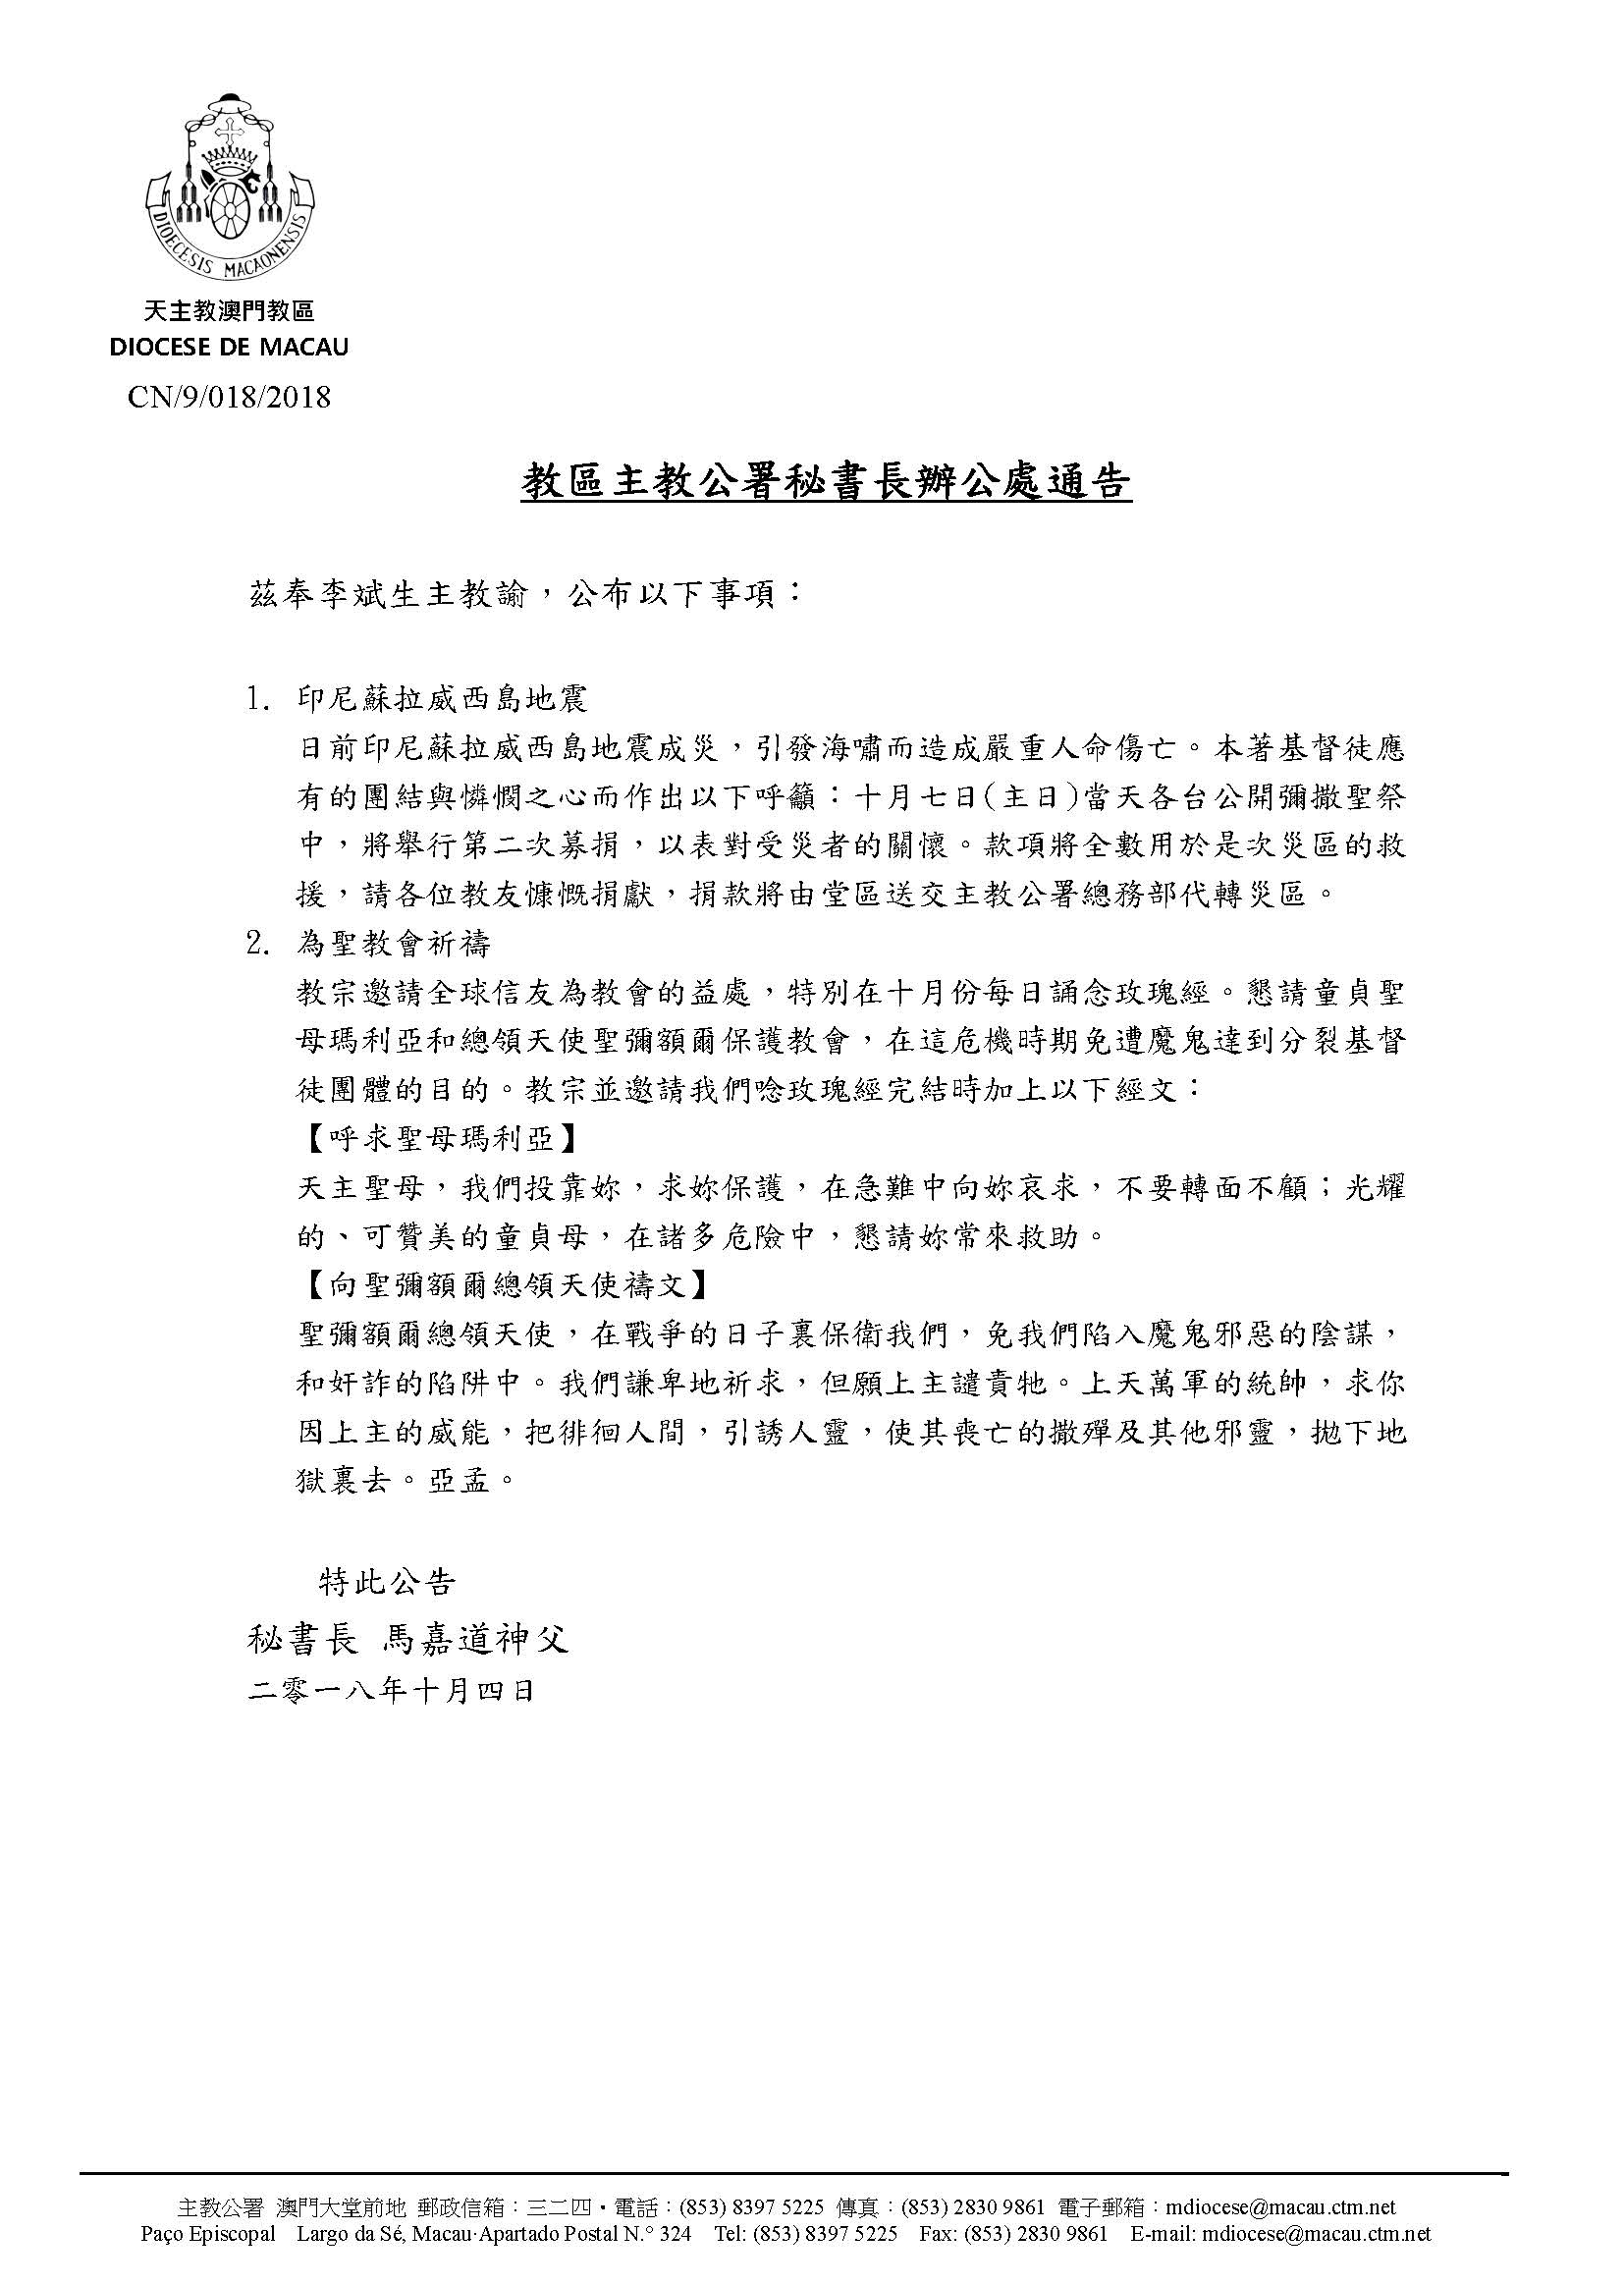 2018-10-04 - Chancery notice_revised_CN+EN+PT_頁面_1.jpg